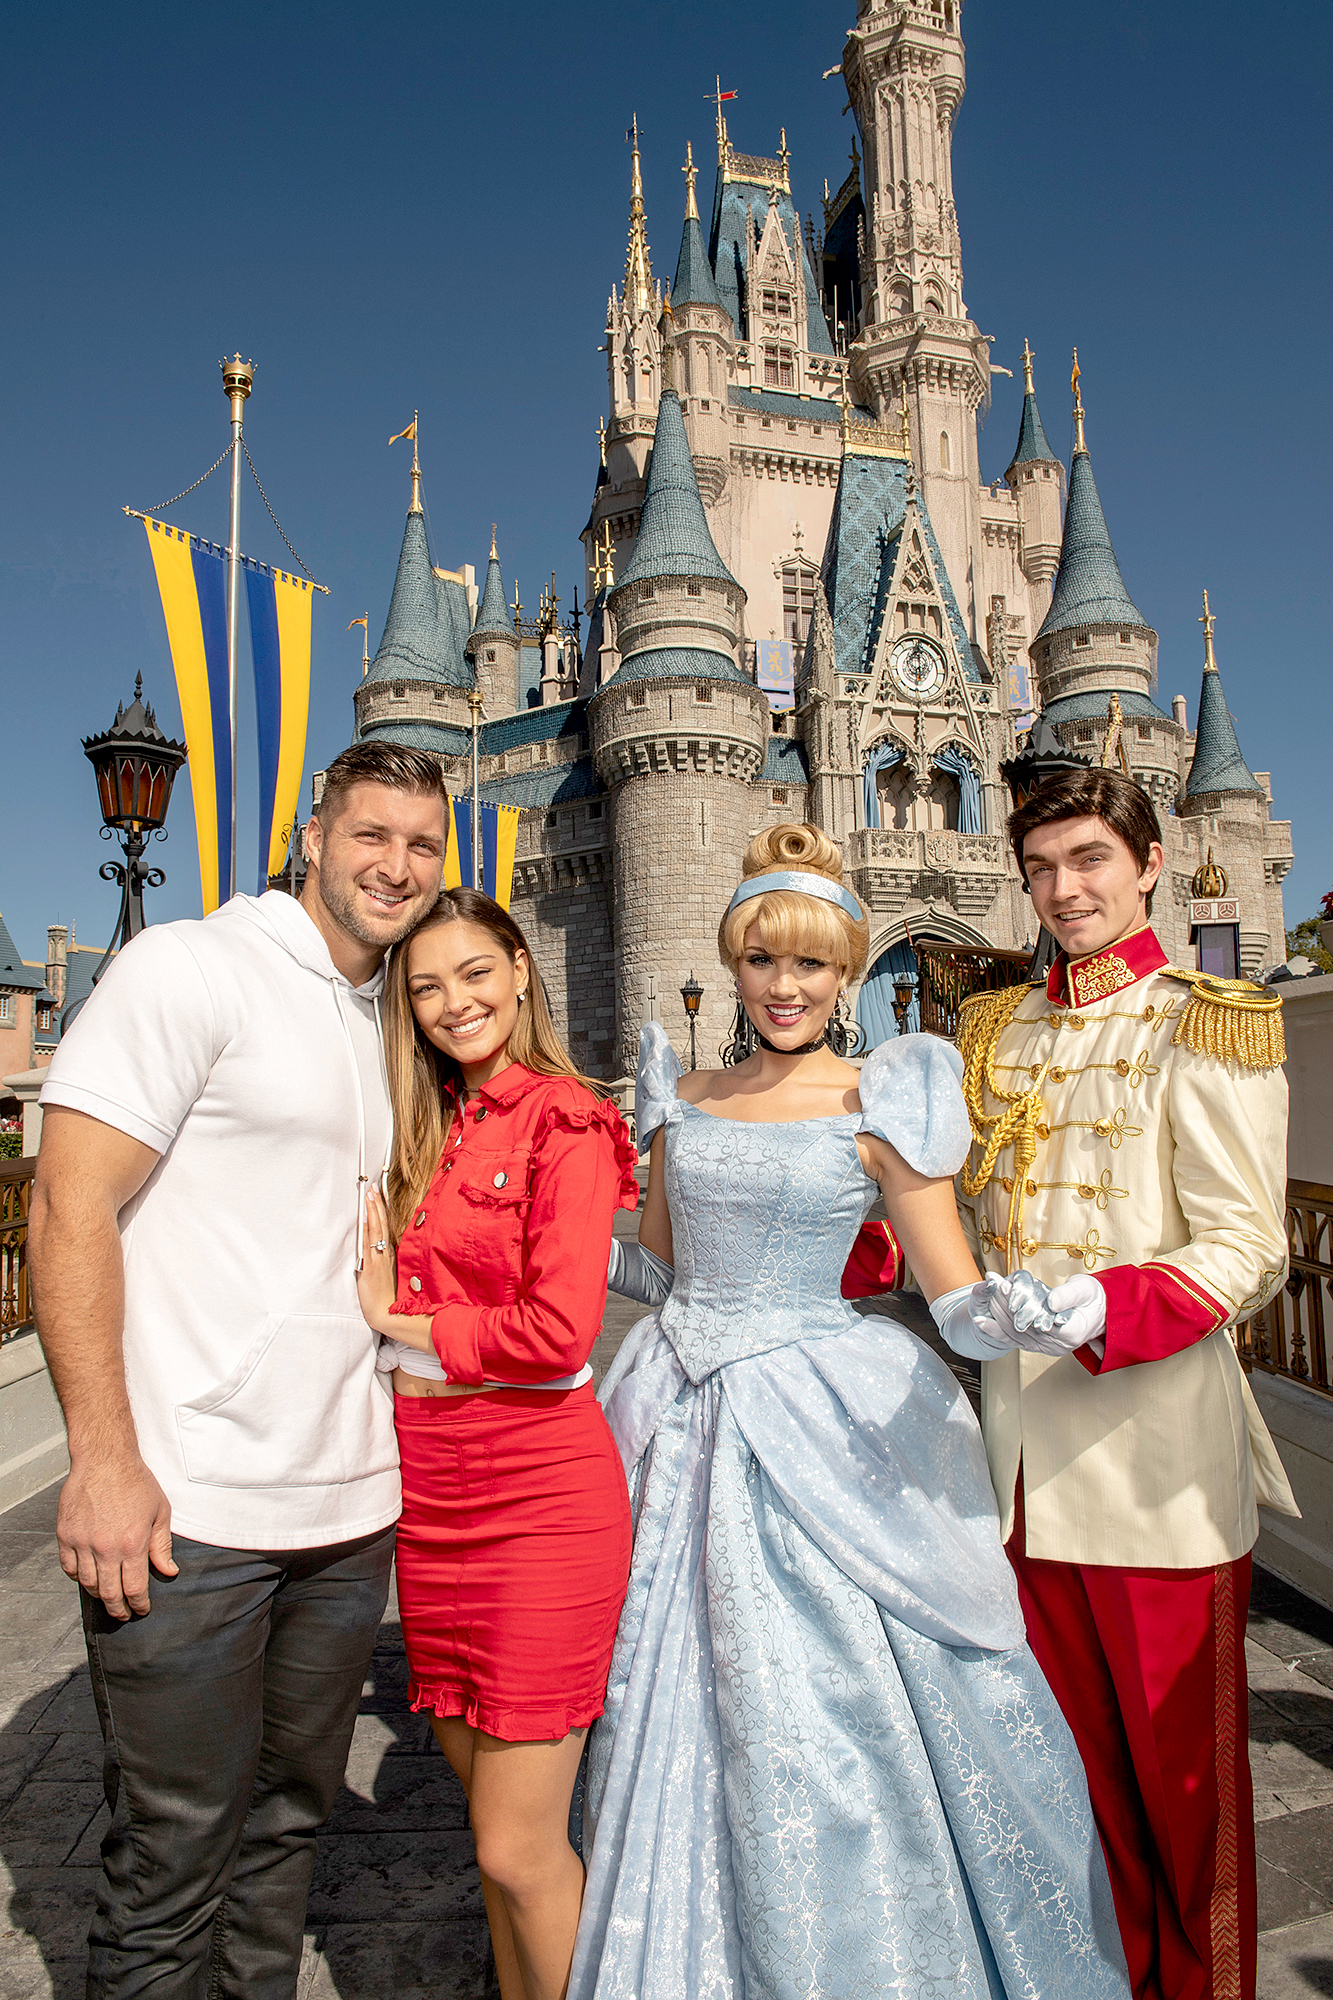 Tim-Tebow-and-Demi-Leigh-Nel-Peters-engaged-disney - The former NFL quarterback and the model posed alongside Cinderella and Prince Charming in front of the princess' castle.